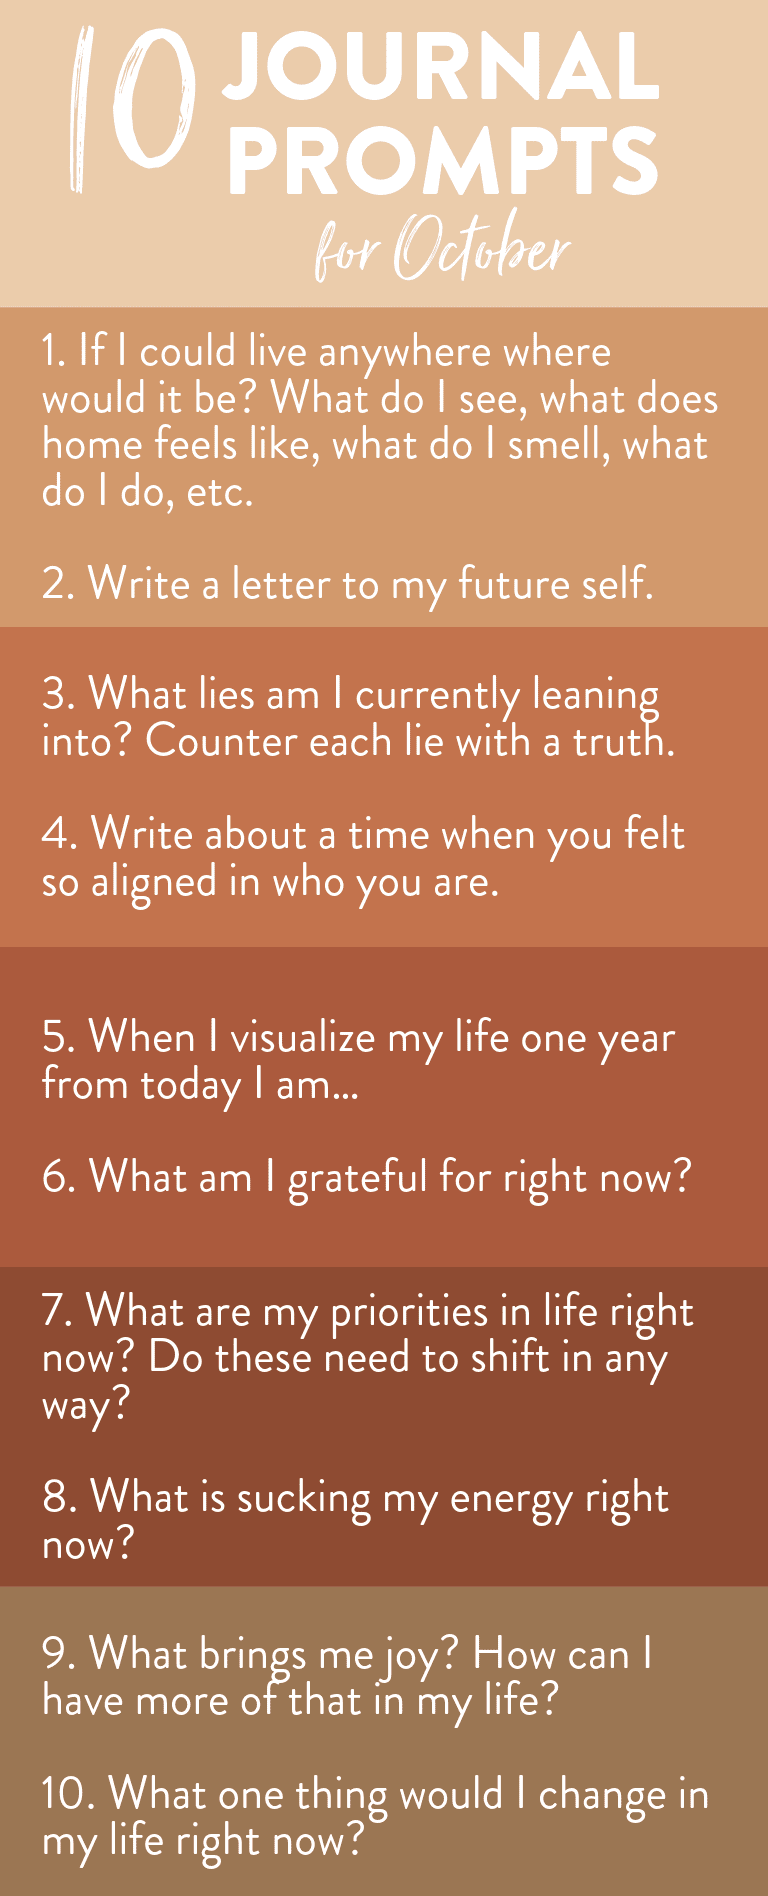 Kickstart your journal writing with these daily journal prompts for October! Seasonally inspired but year-round relevant this list will get you cracking open your journal and letting the thoughts pour out #journalprompts